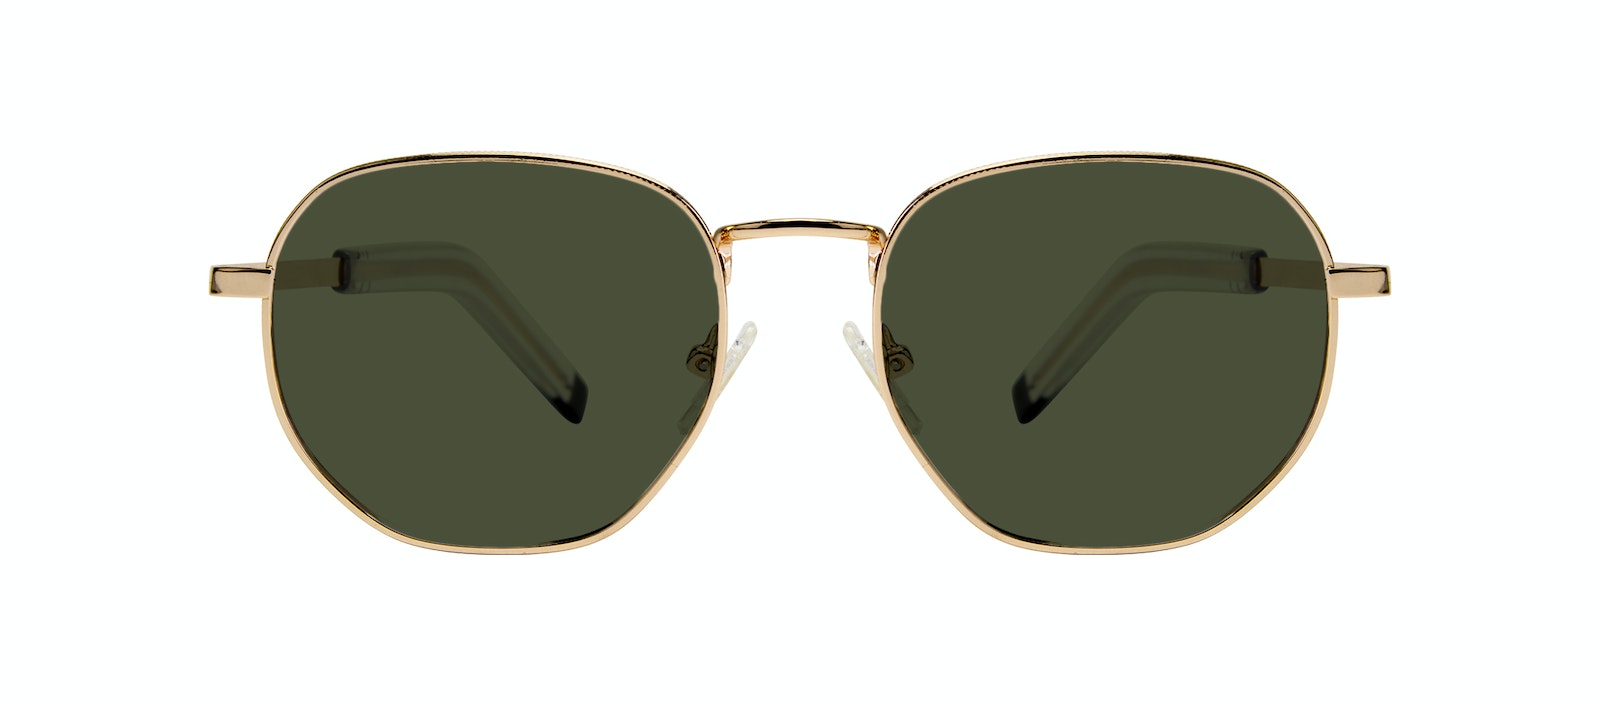 Affordable Fashion Glasses Round Sunglasses Men Rise Gold Front